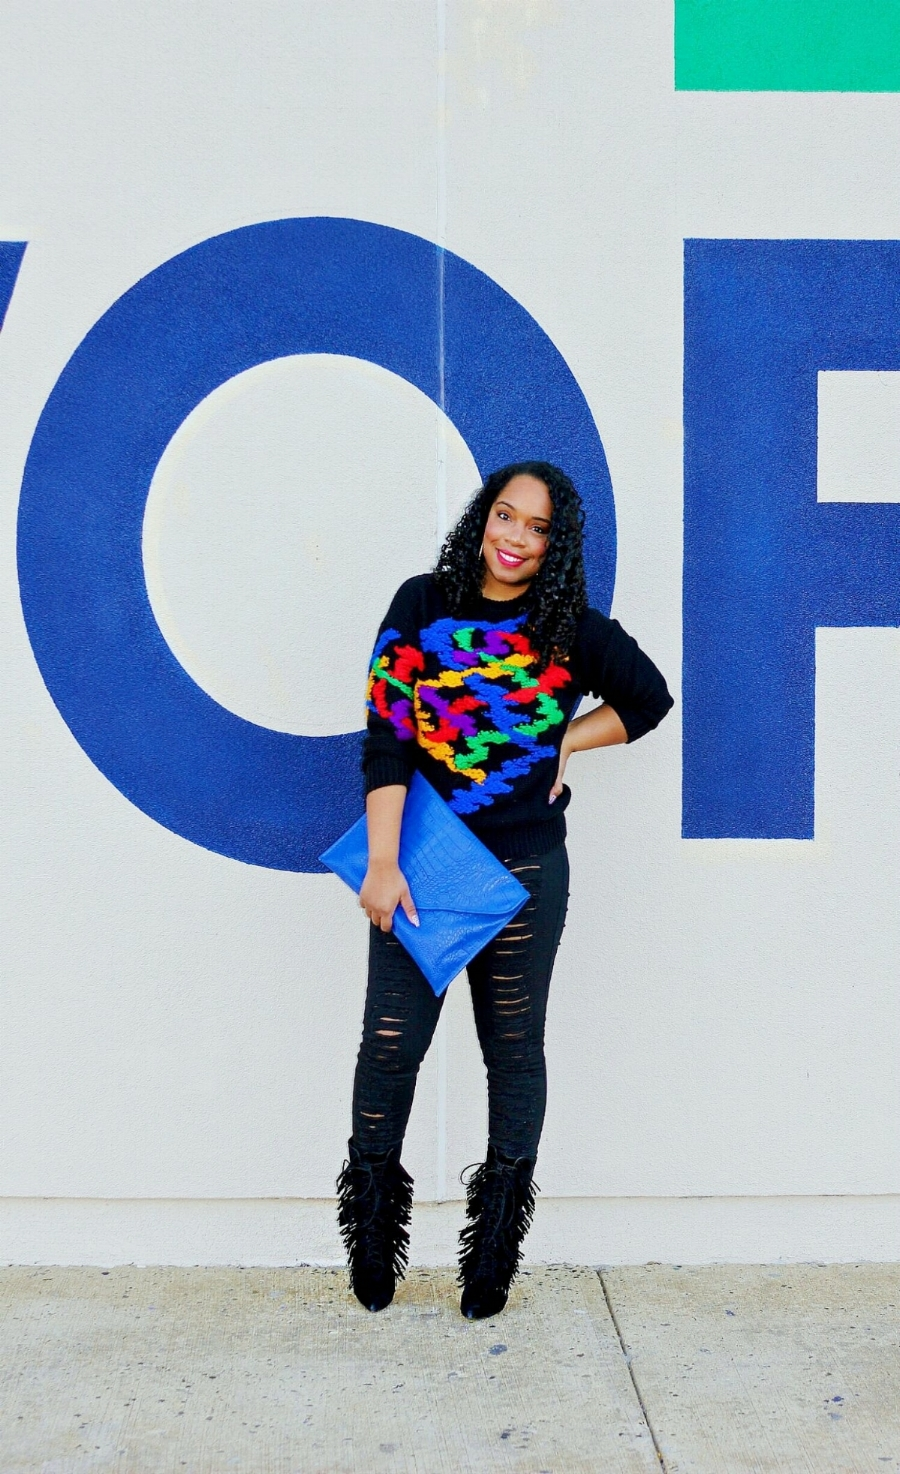 Style & Poise: Colorful sweater